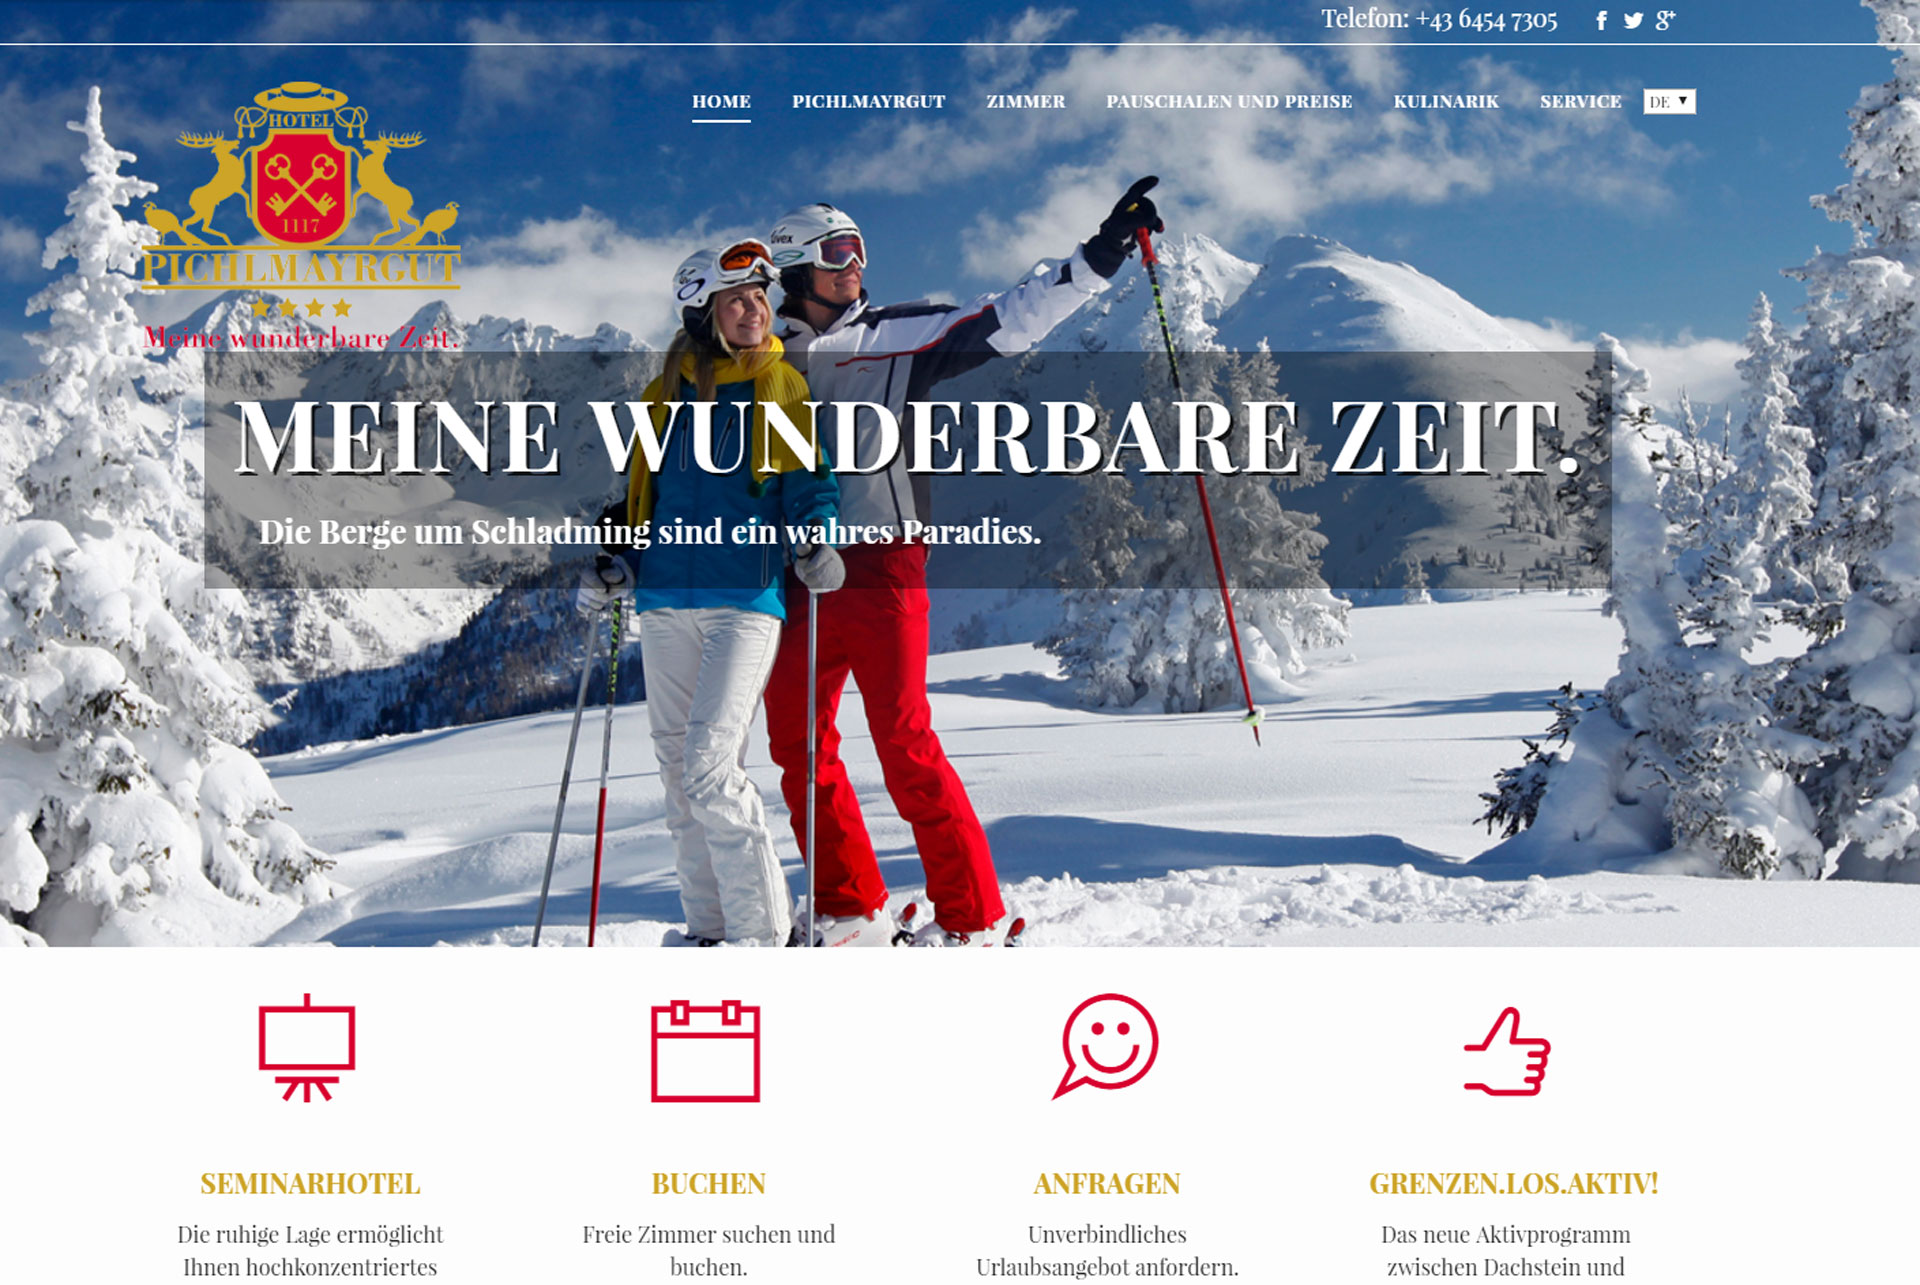 Website Pichlmayrgut in Schladming